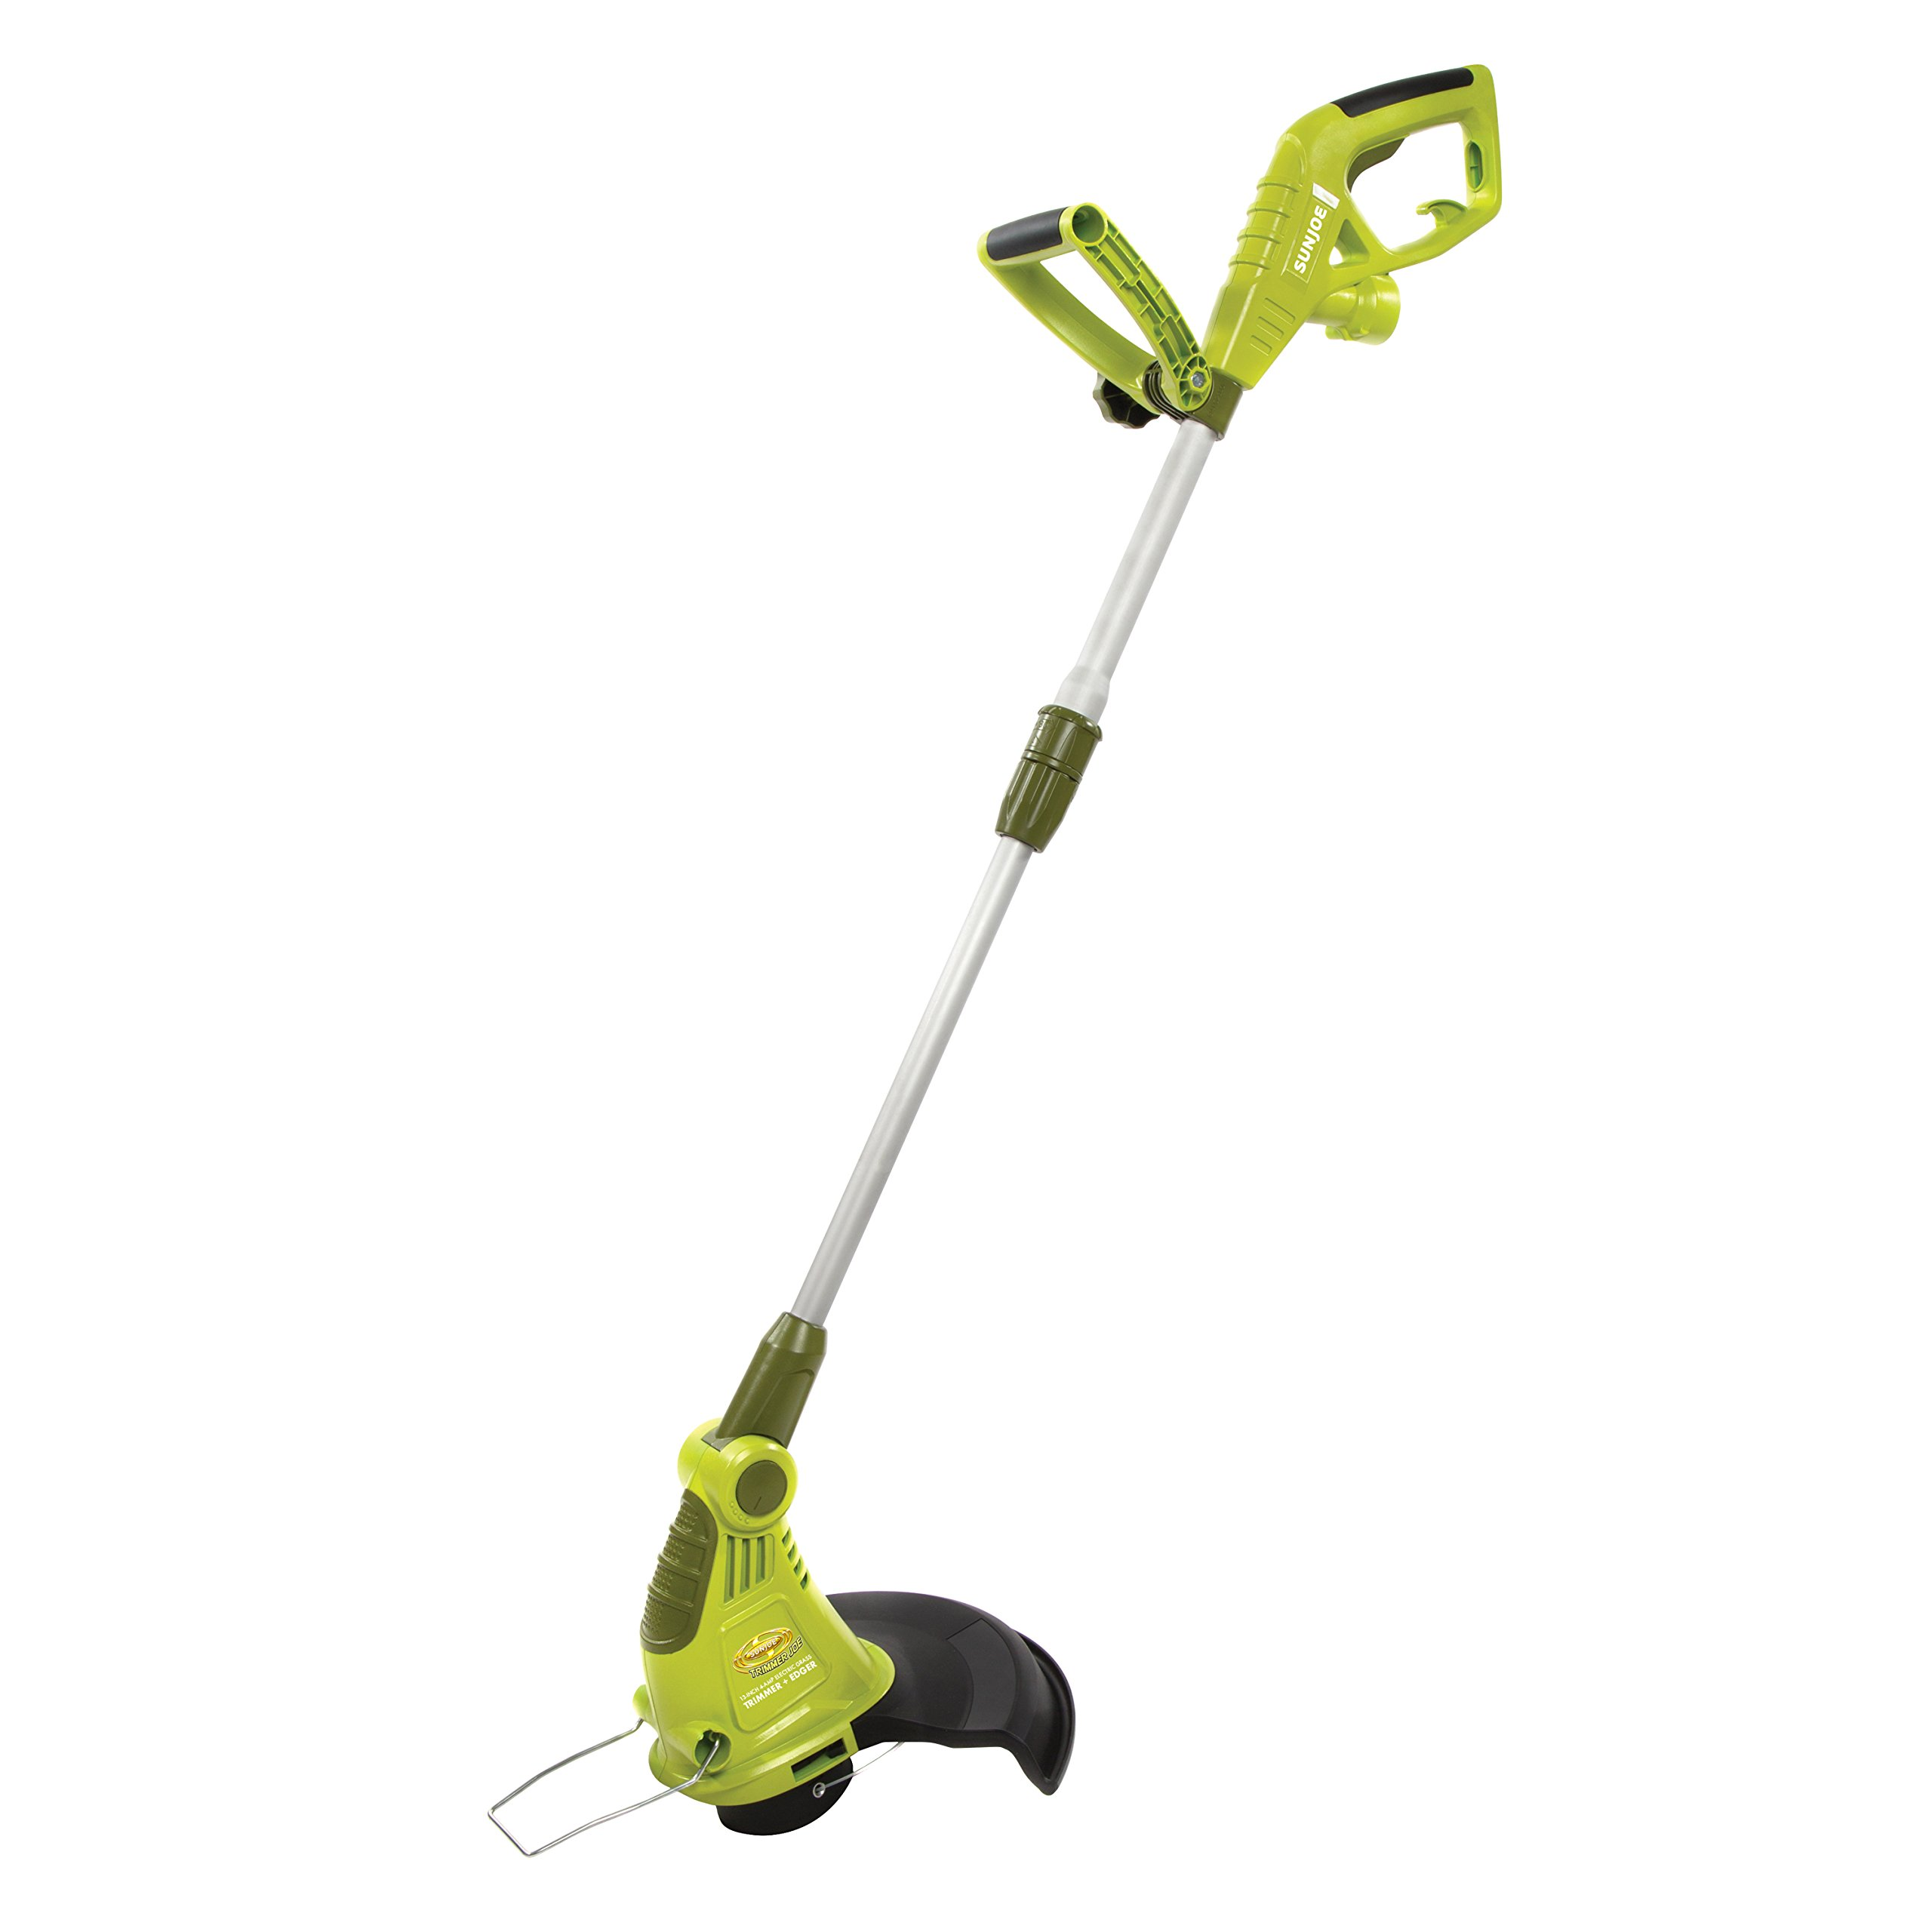 Sun Joe TRJ13STE Trimmer Joe 13'' Automatic Feed Electric String Trimmer/Edger